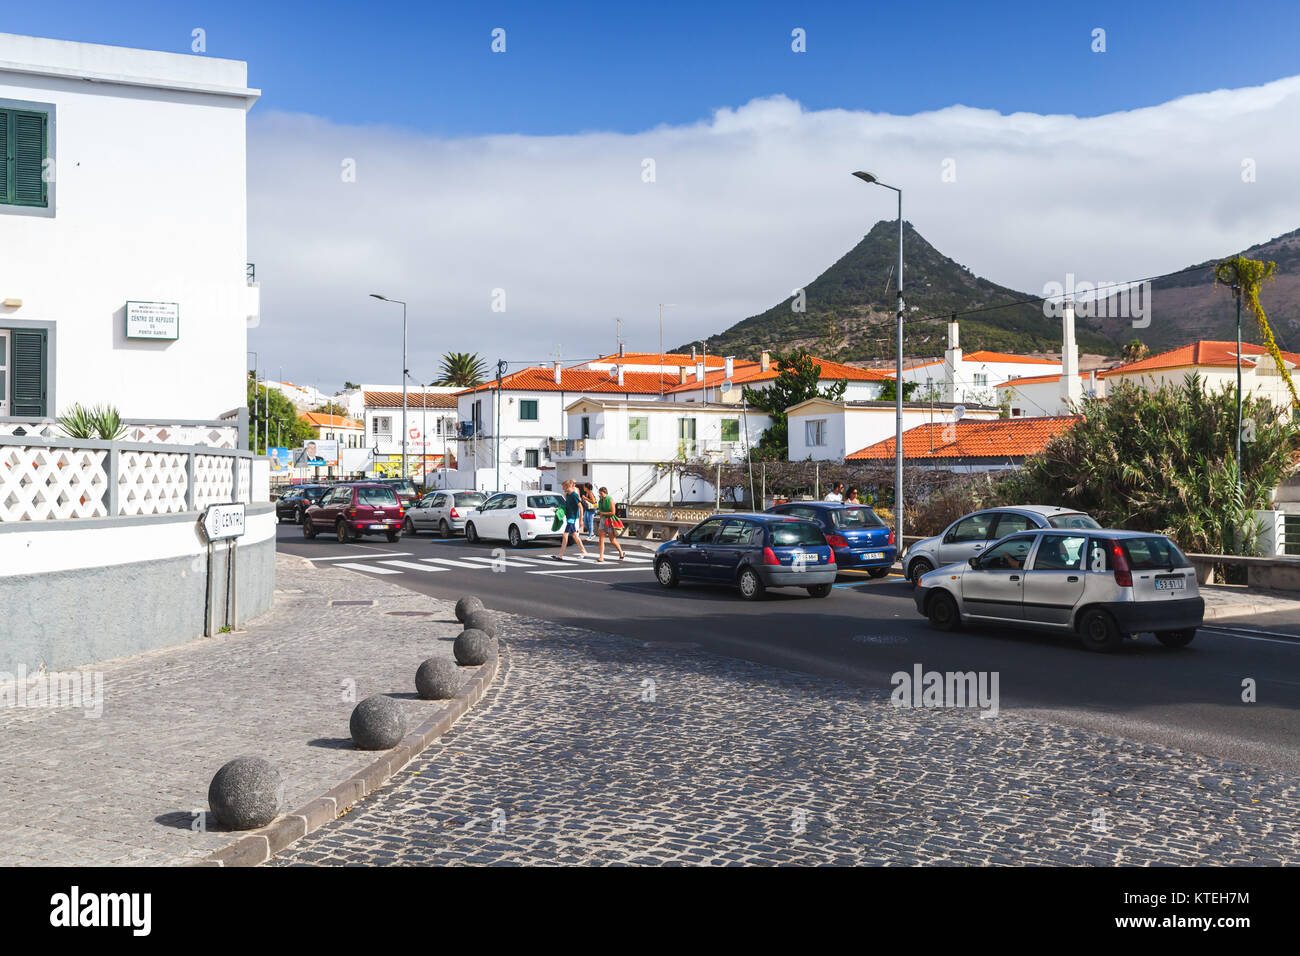 Vila Baleira, Portugal - August 18, 2017: Vila Baleira the only city and the capital of Porto Santo Island, Madeira, - Stock Image